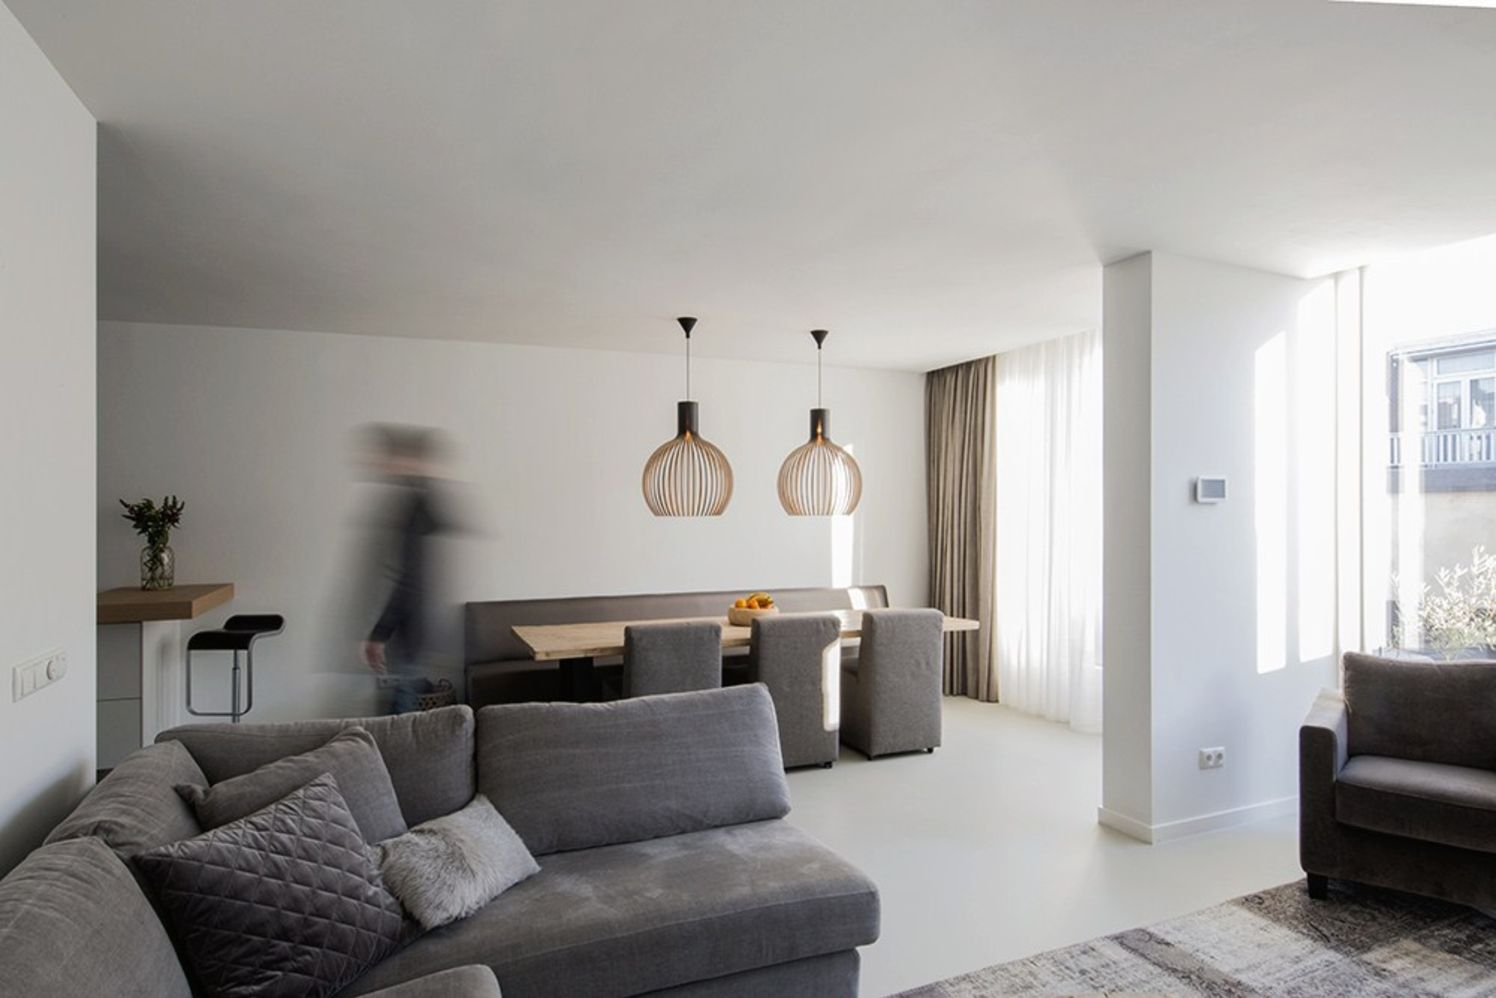 Bright tranquil house from Arjen Reas with homey interior design illuminated by natural light House K (1)